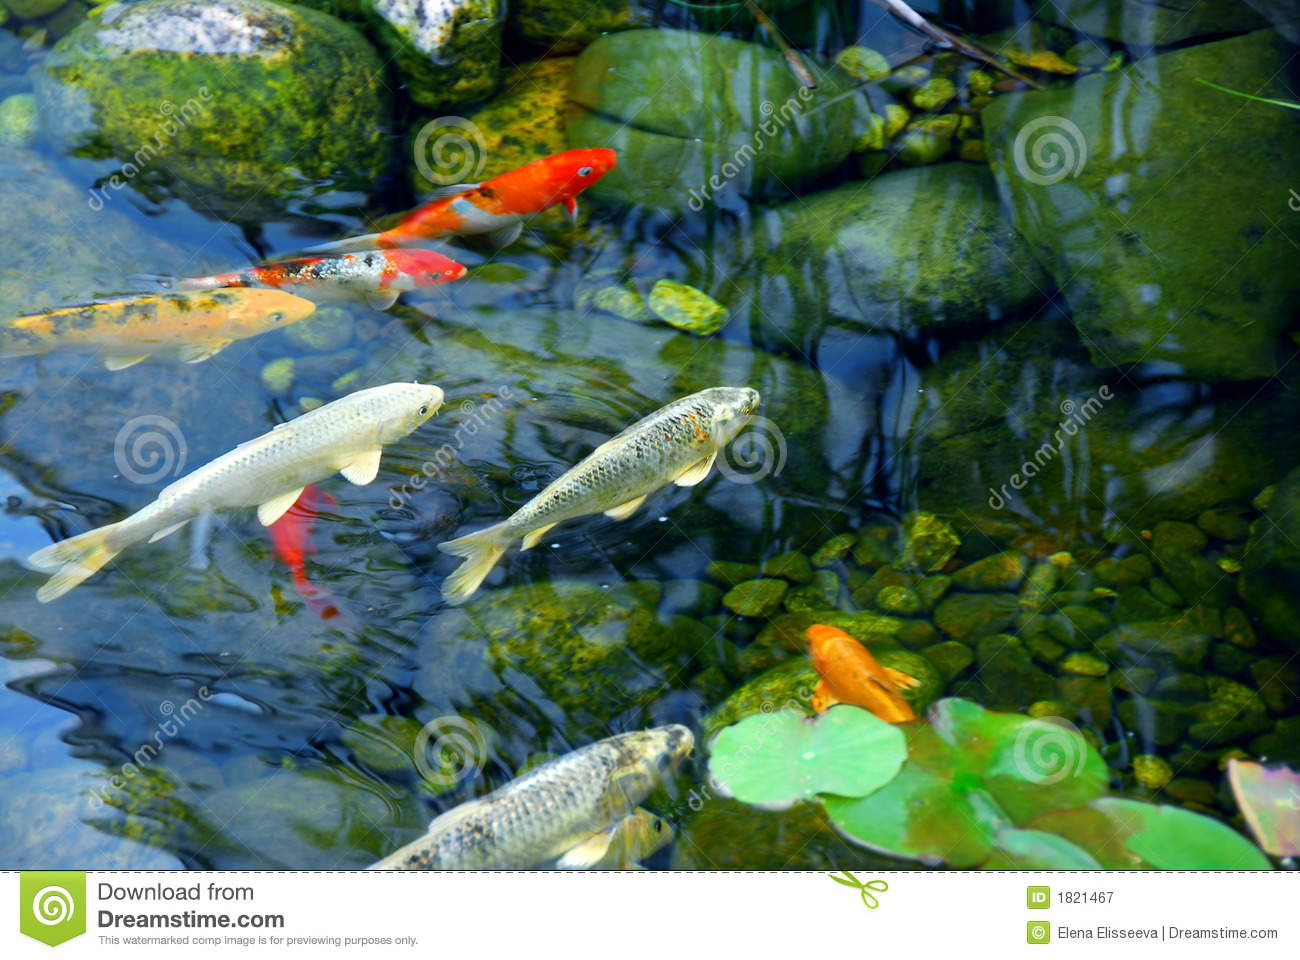 Koi pond stock image image of asia colorful plant for Fish pond images